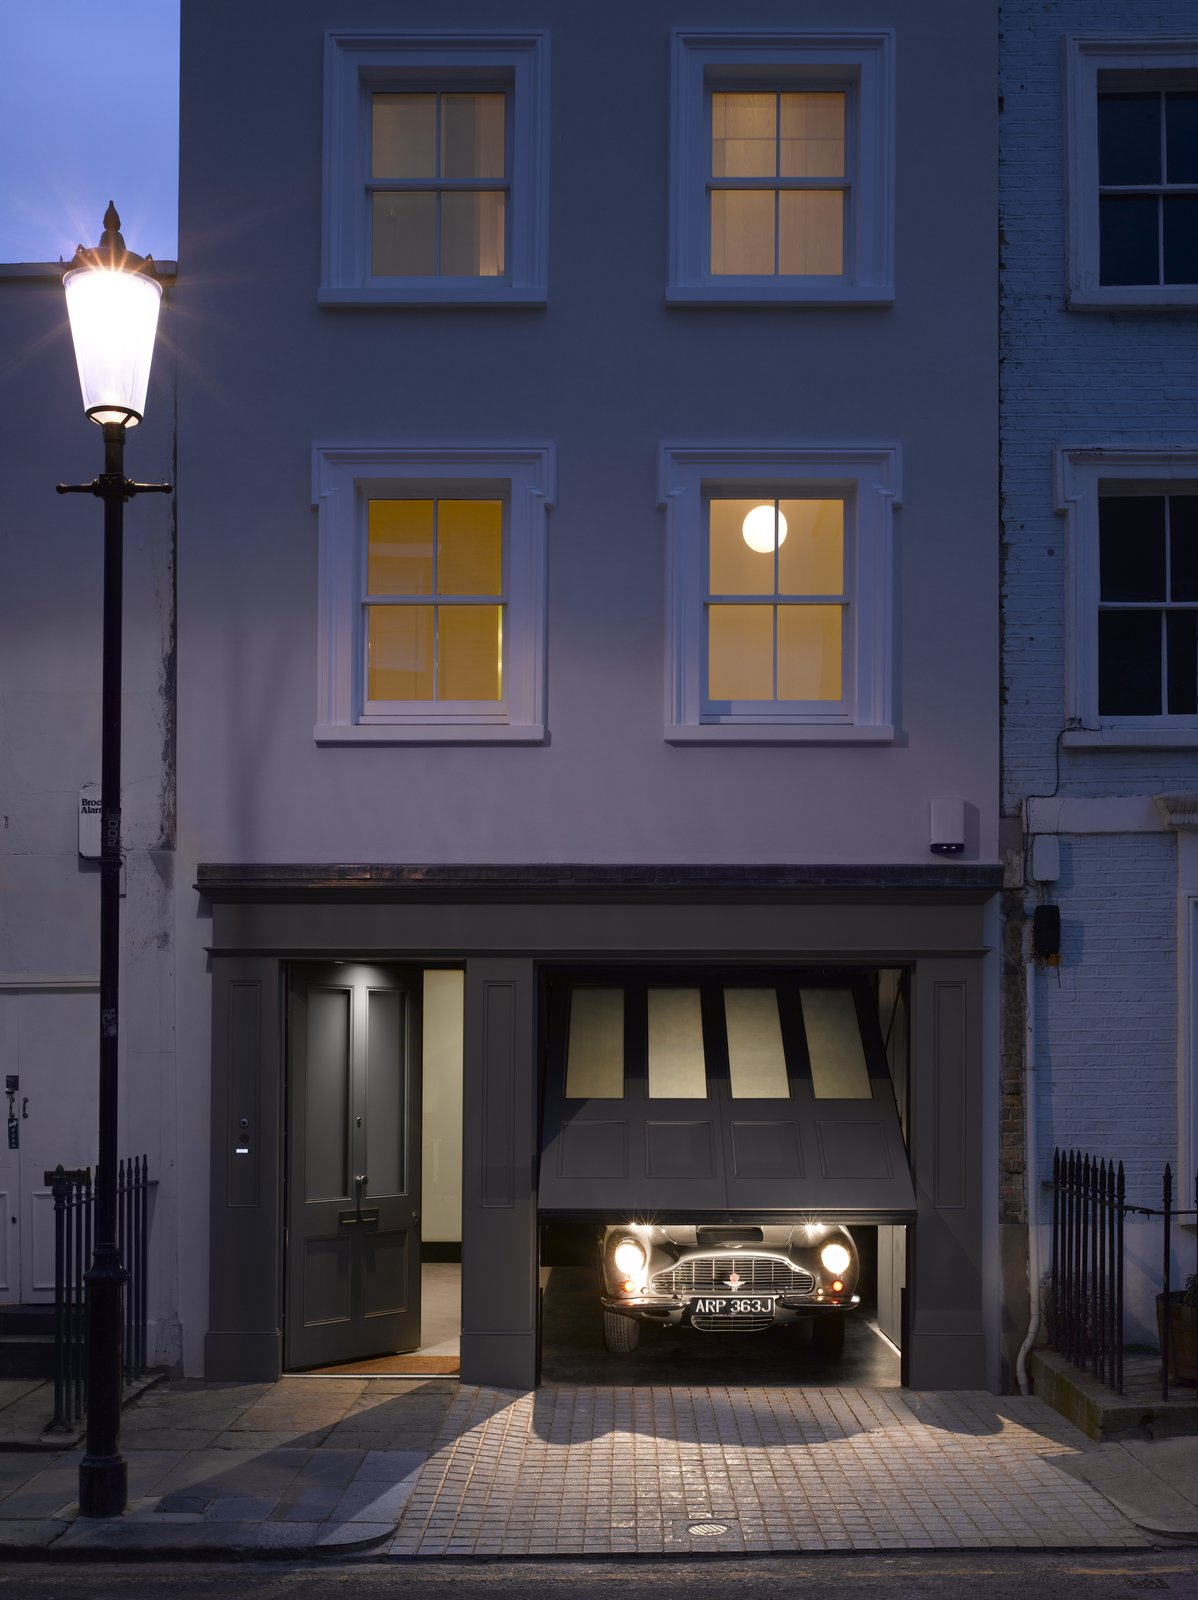 Garage and Attached Garage Room Type  Photo 2 of 12 in A Stunning Townhouse For Sale in a Historic London Neighborhood